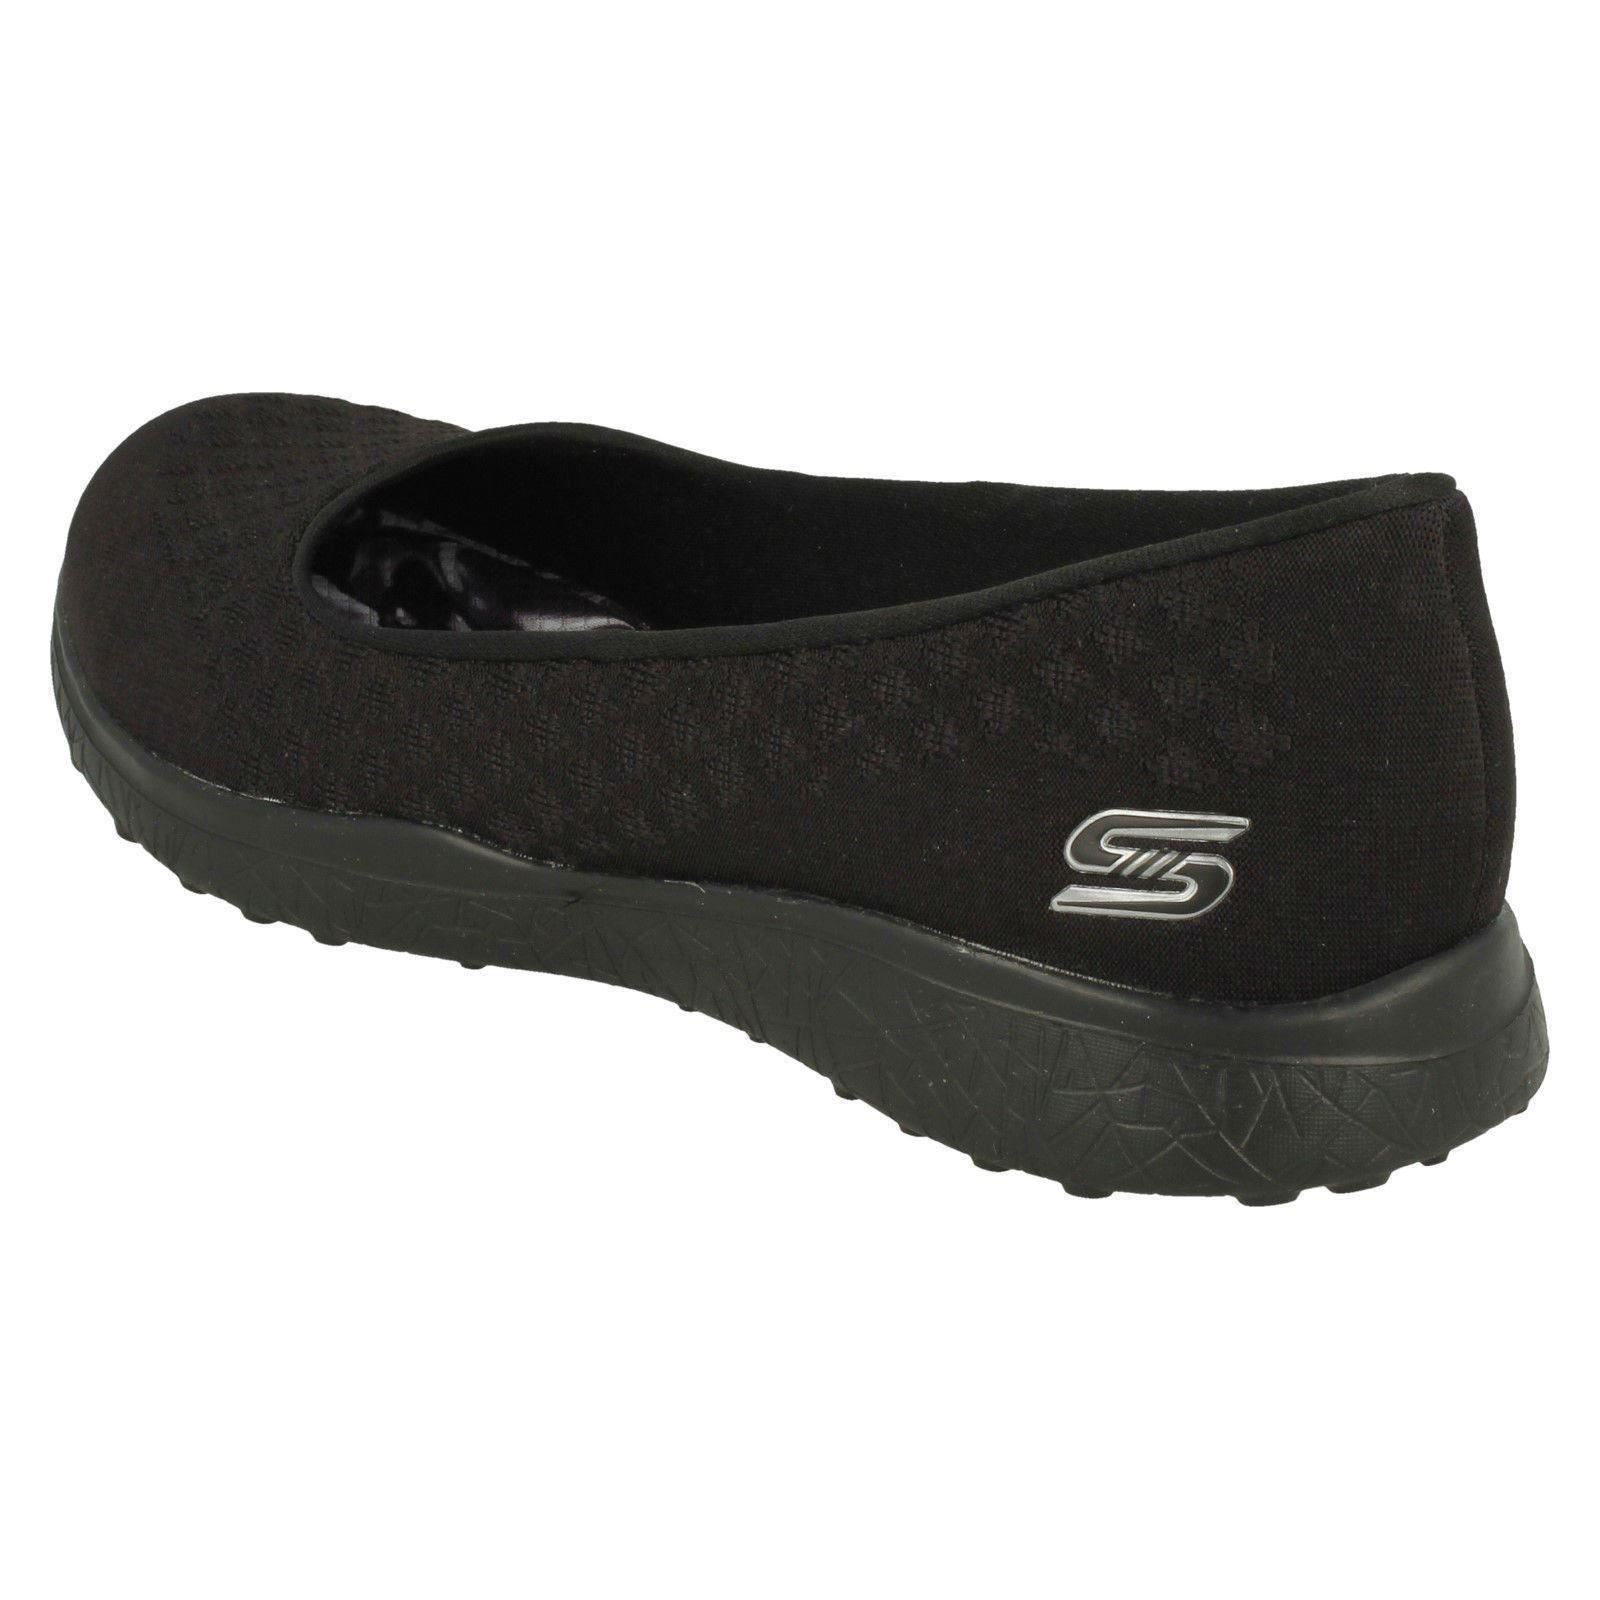 Donna Skechers Memory Foam Scarpe Scarpe Scarpe ONE UP 23312 0a4a15